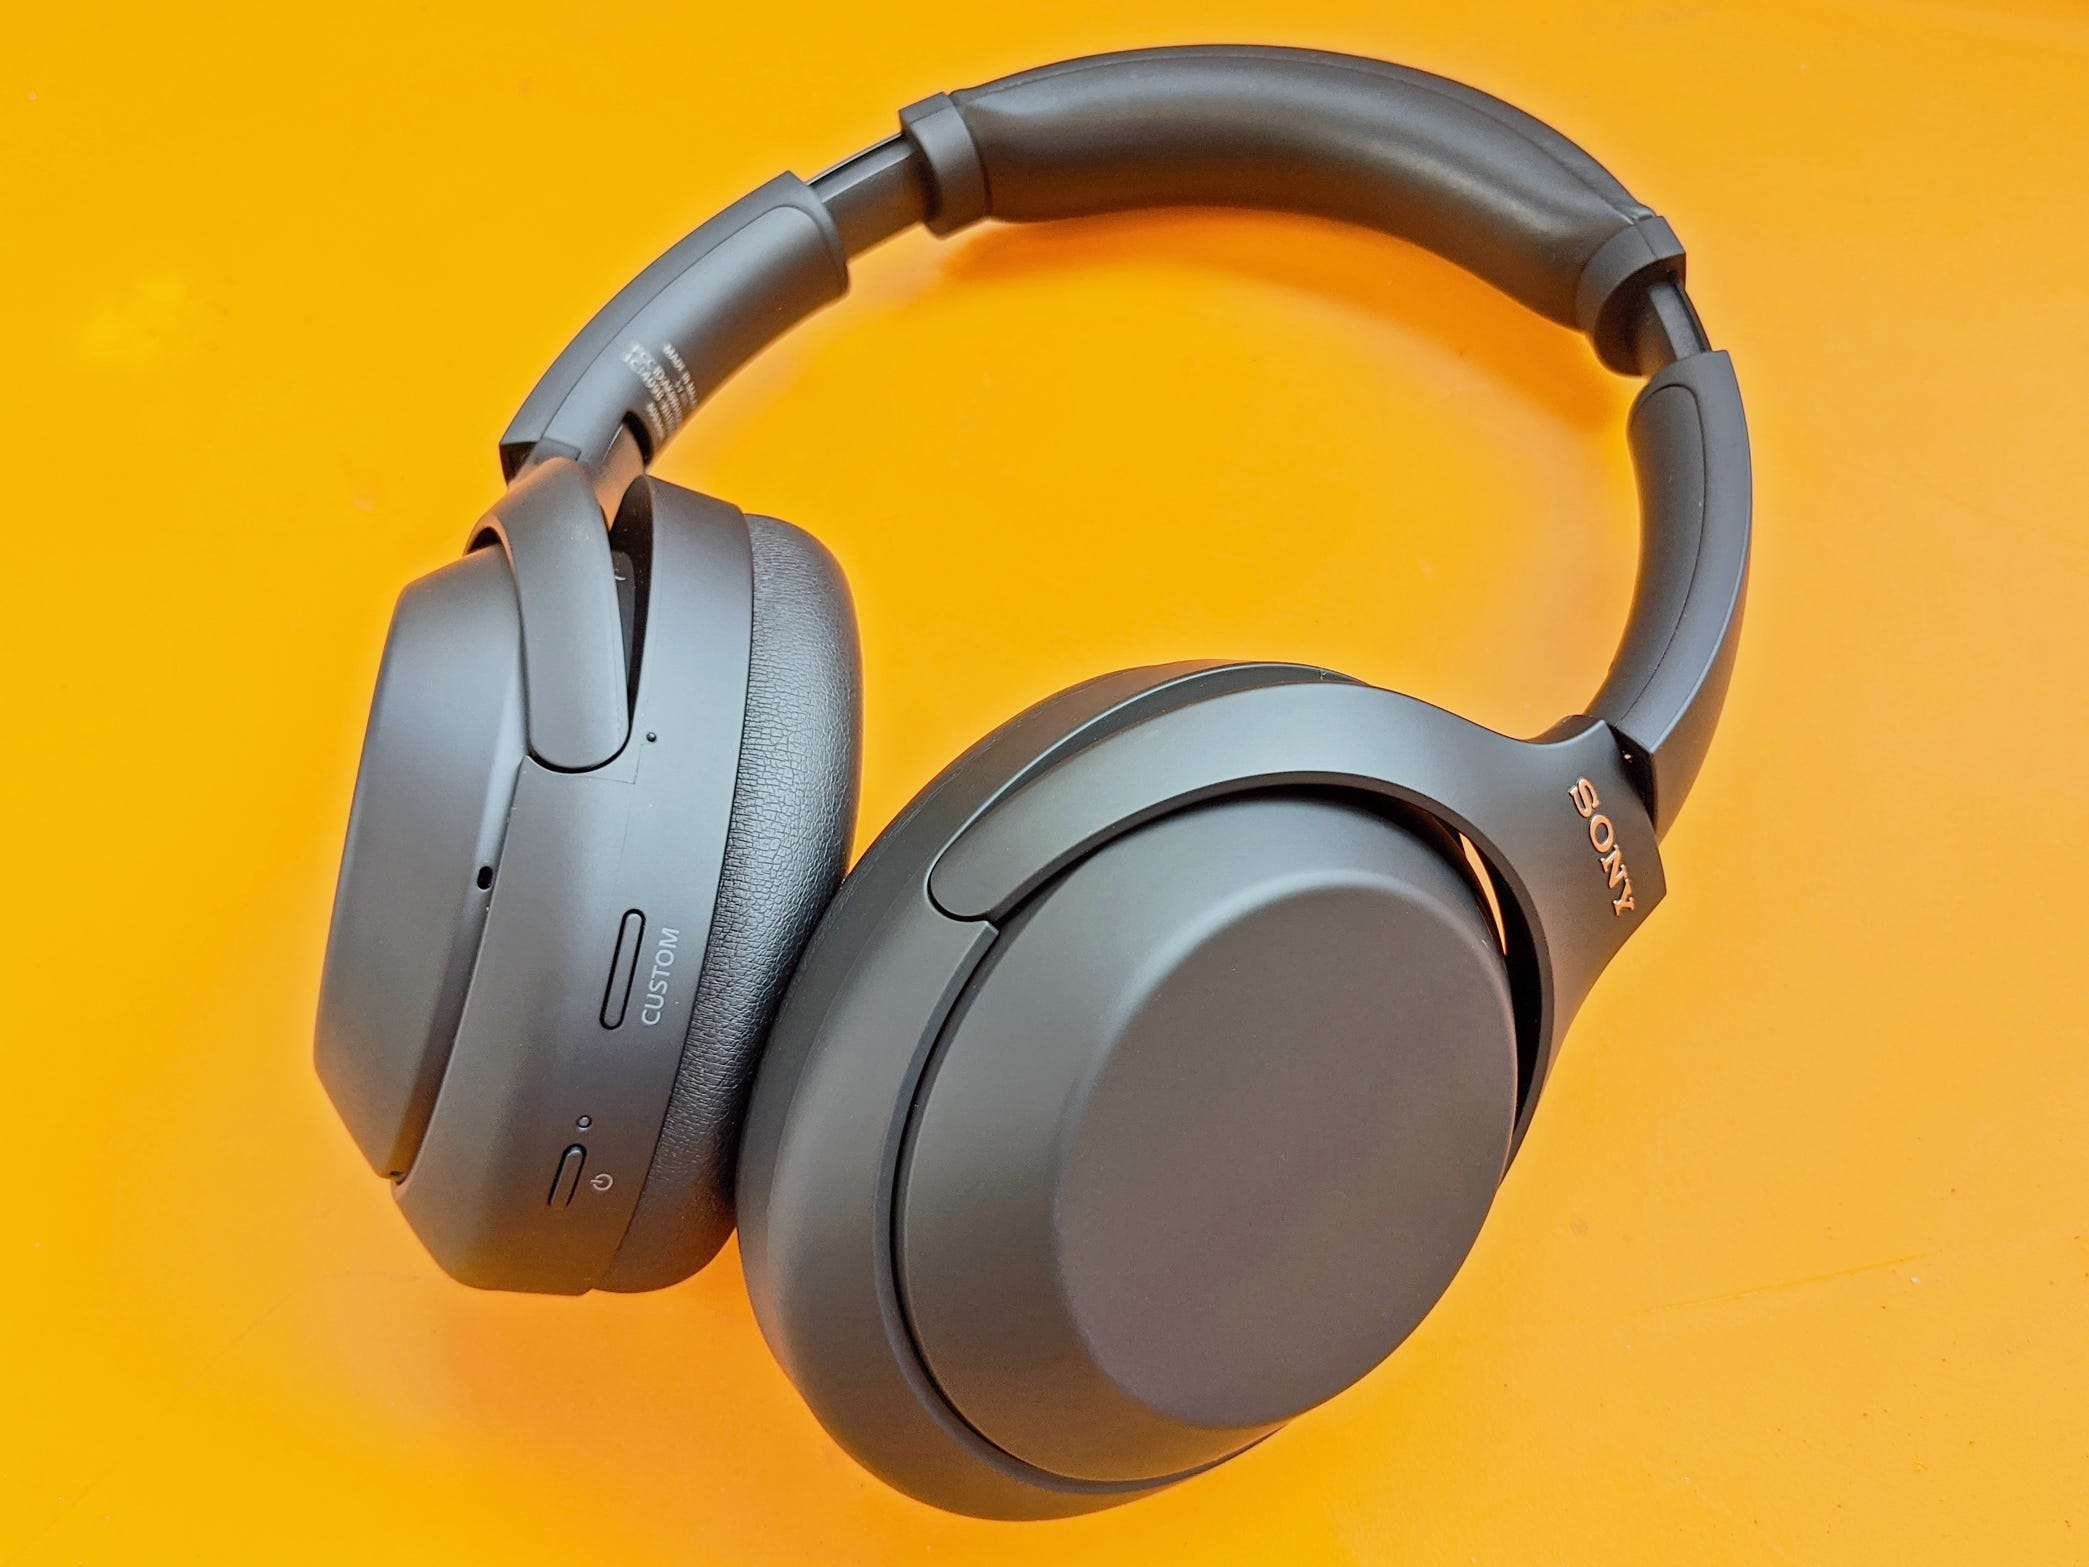 Sony Wh 1000xm4 Wireless Noise Cancelling Headphones Review Business Insider